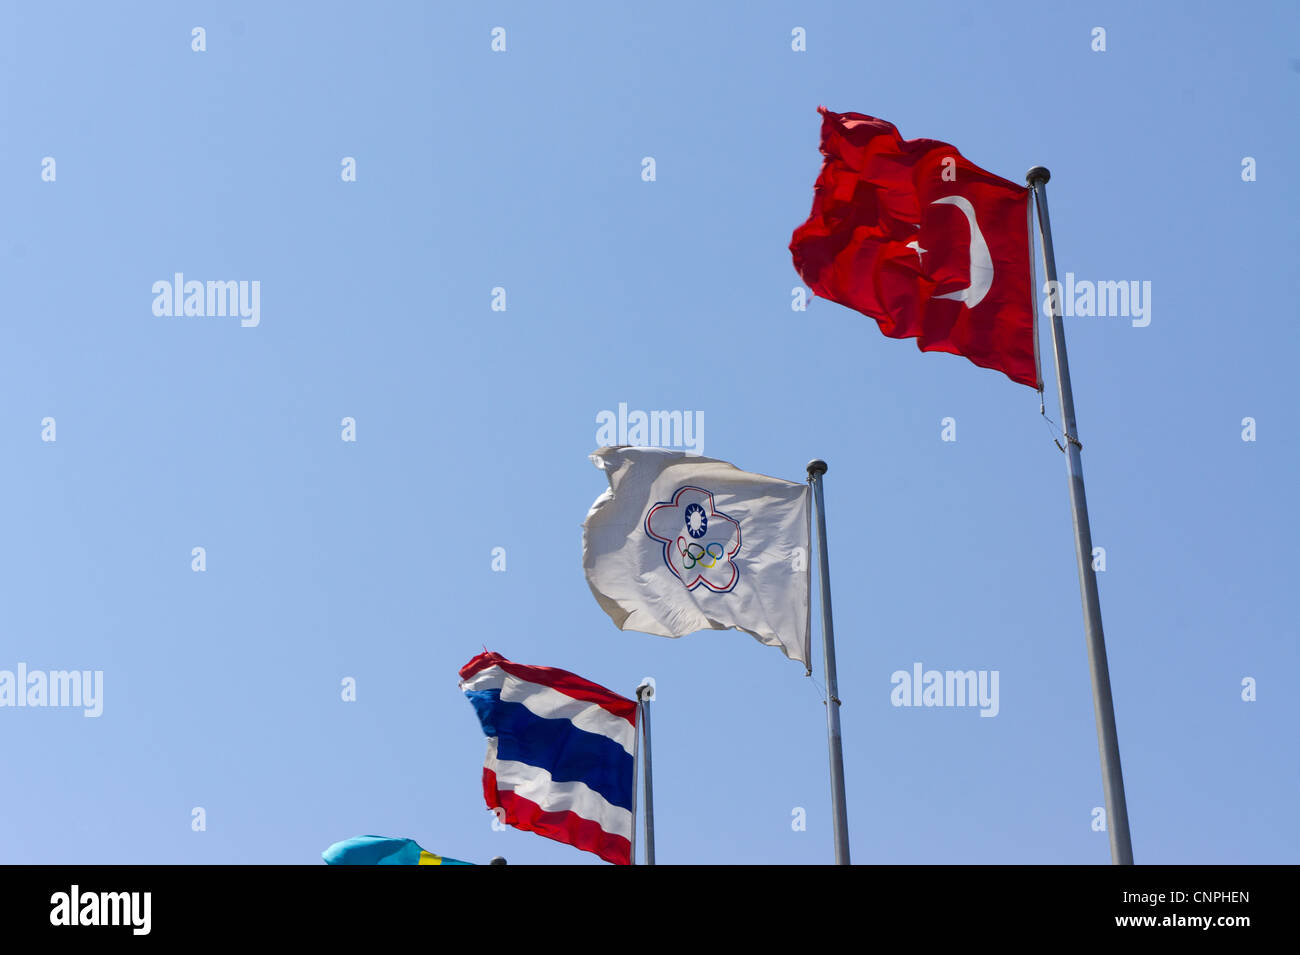 The Chinese Taipei Olympic Committee flag used instead of the Republic of China (Taiwan) flag at the 2008 Beijing Stock Photo